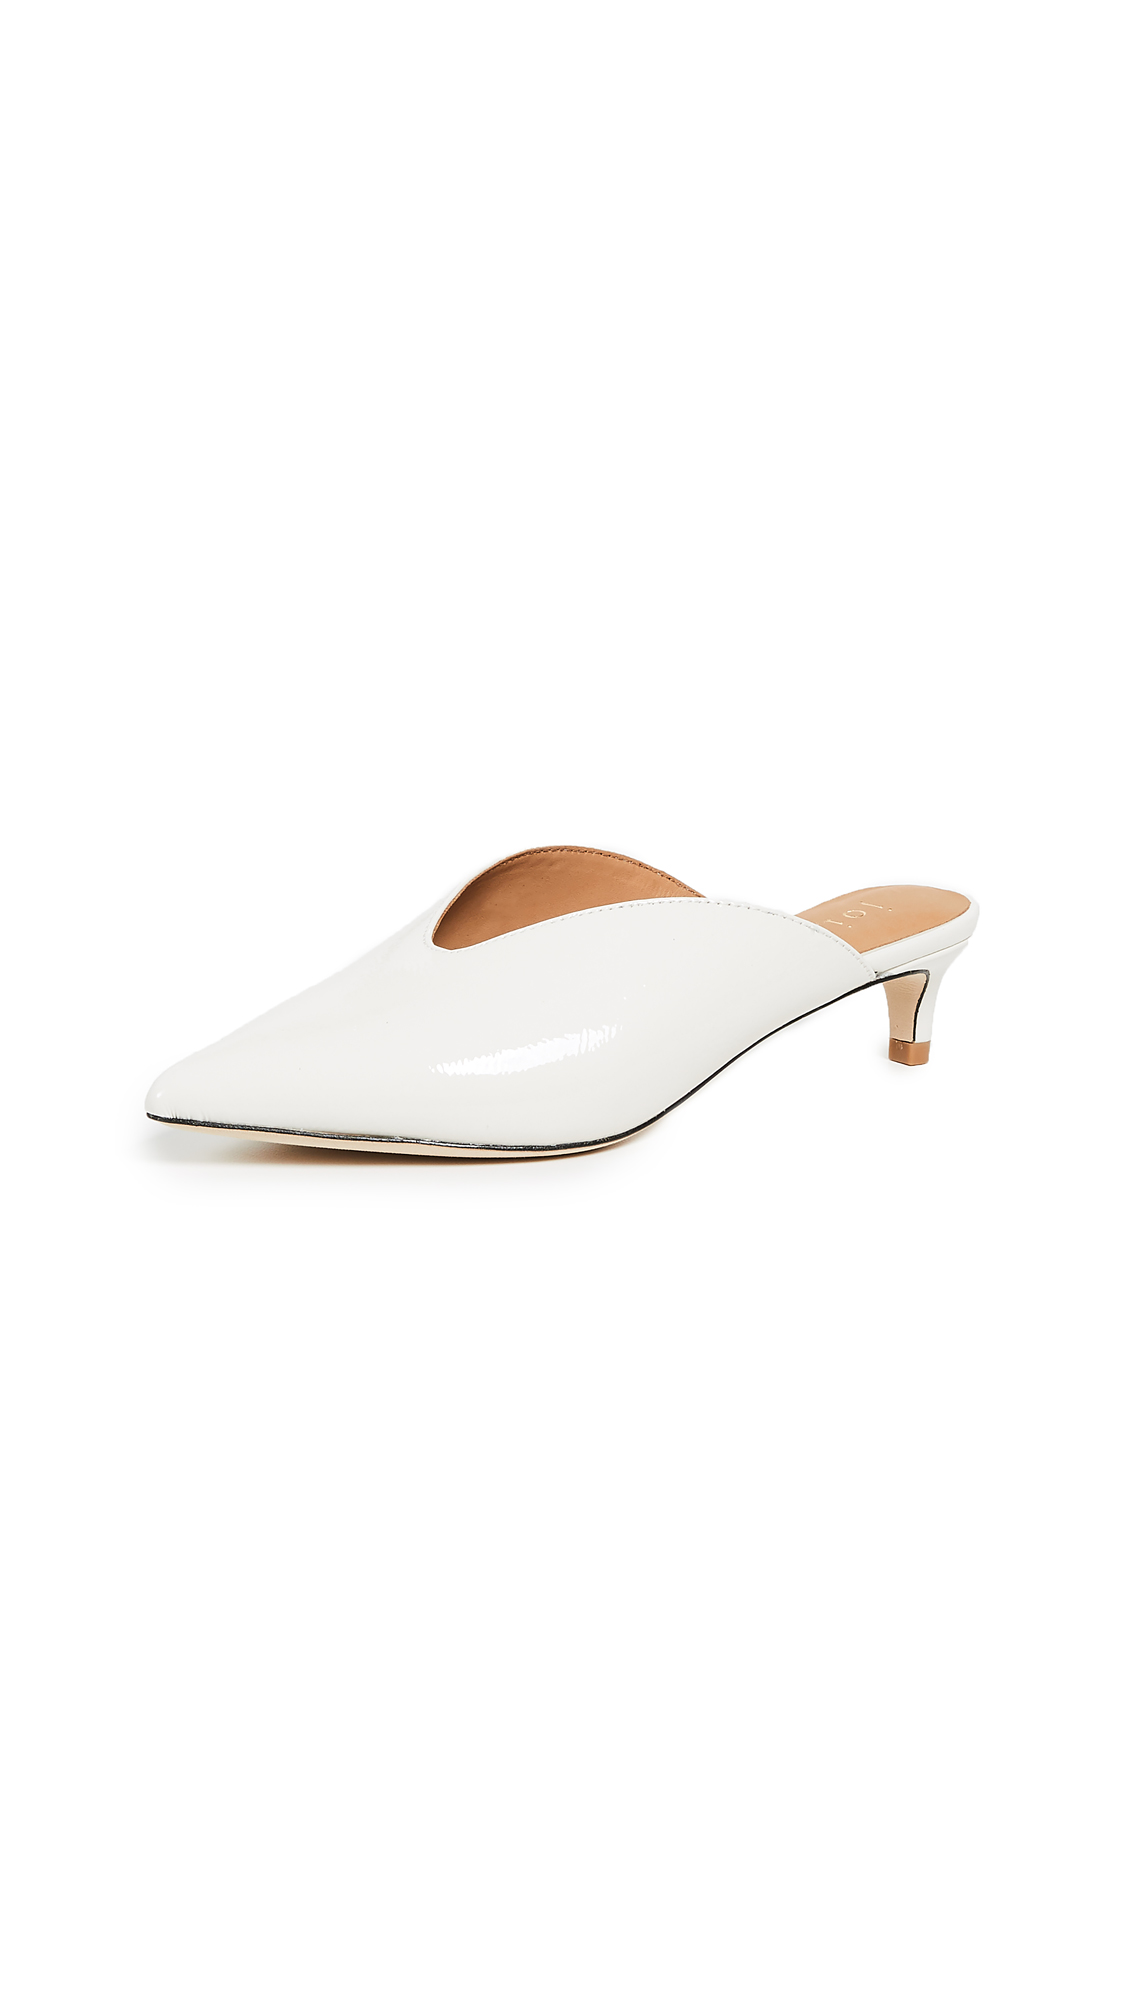 Joie Canilly Mules - Ivory